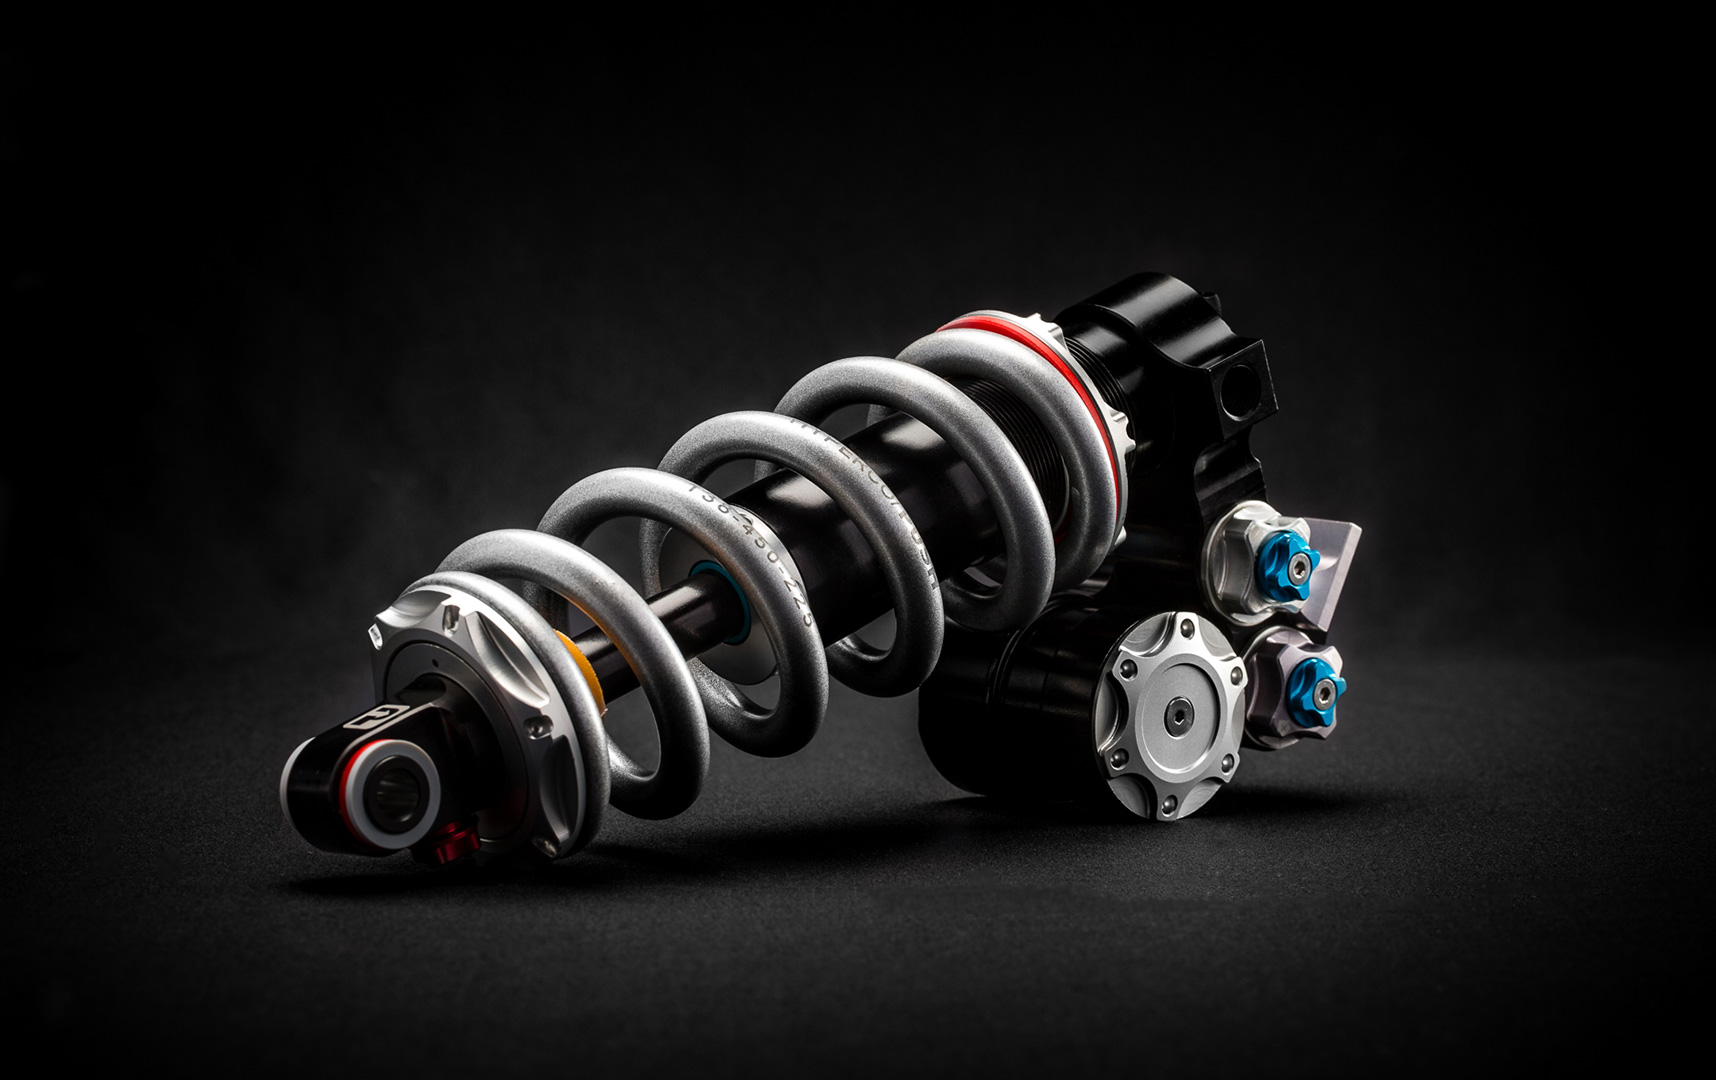 jimmy_bowron_product_photography_push_suspension_1.jpg